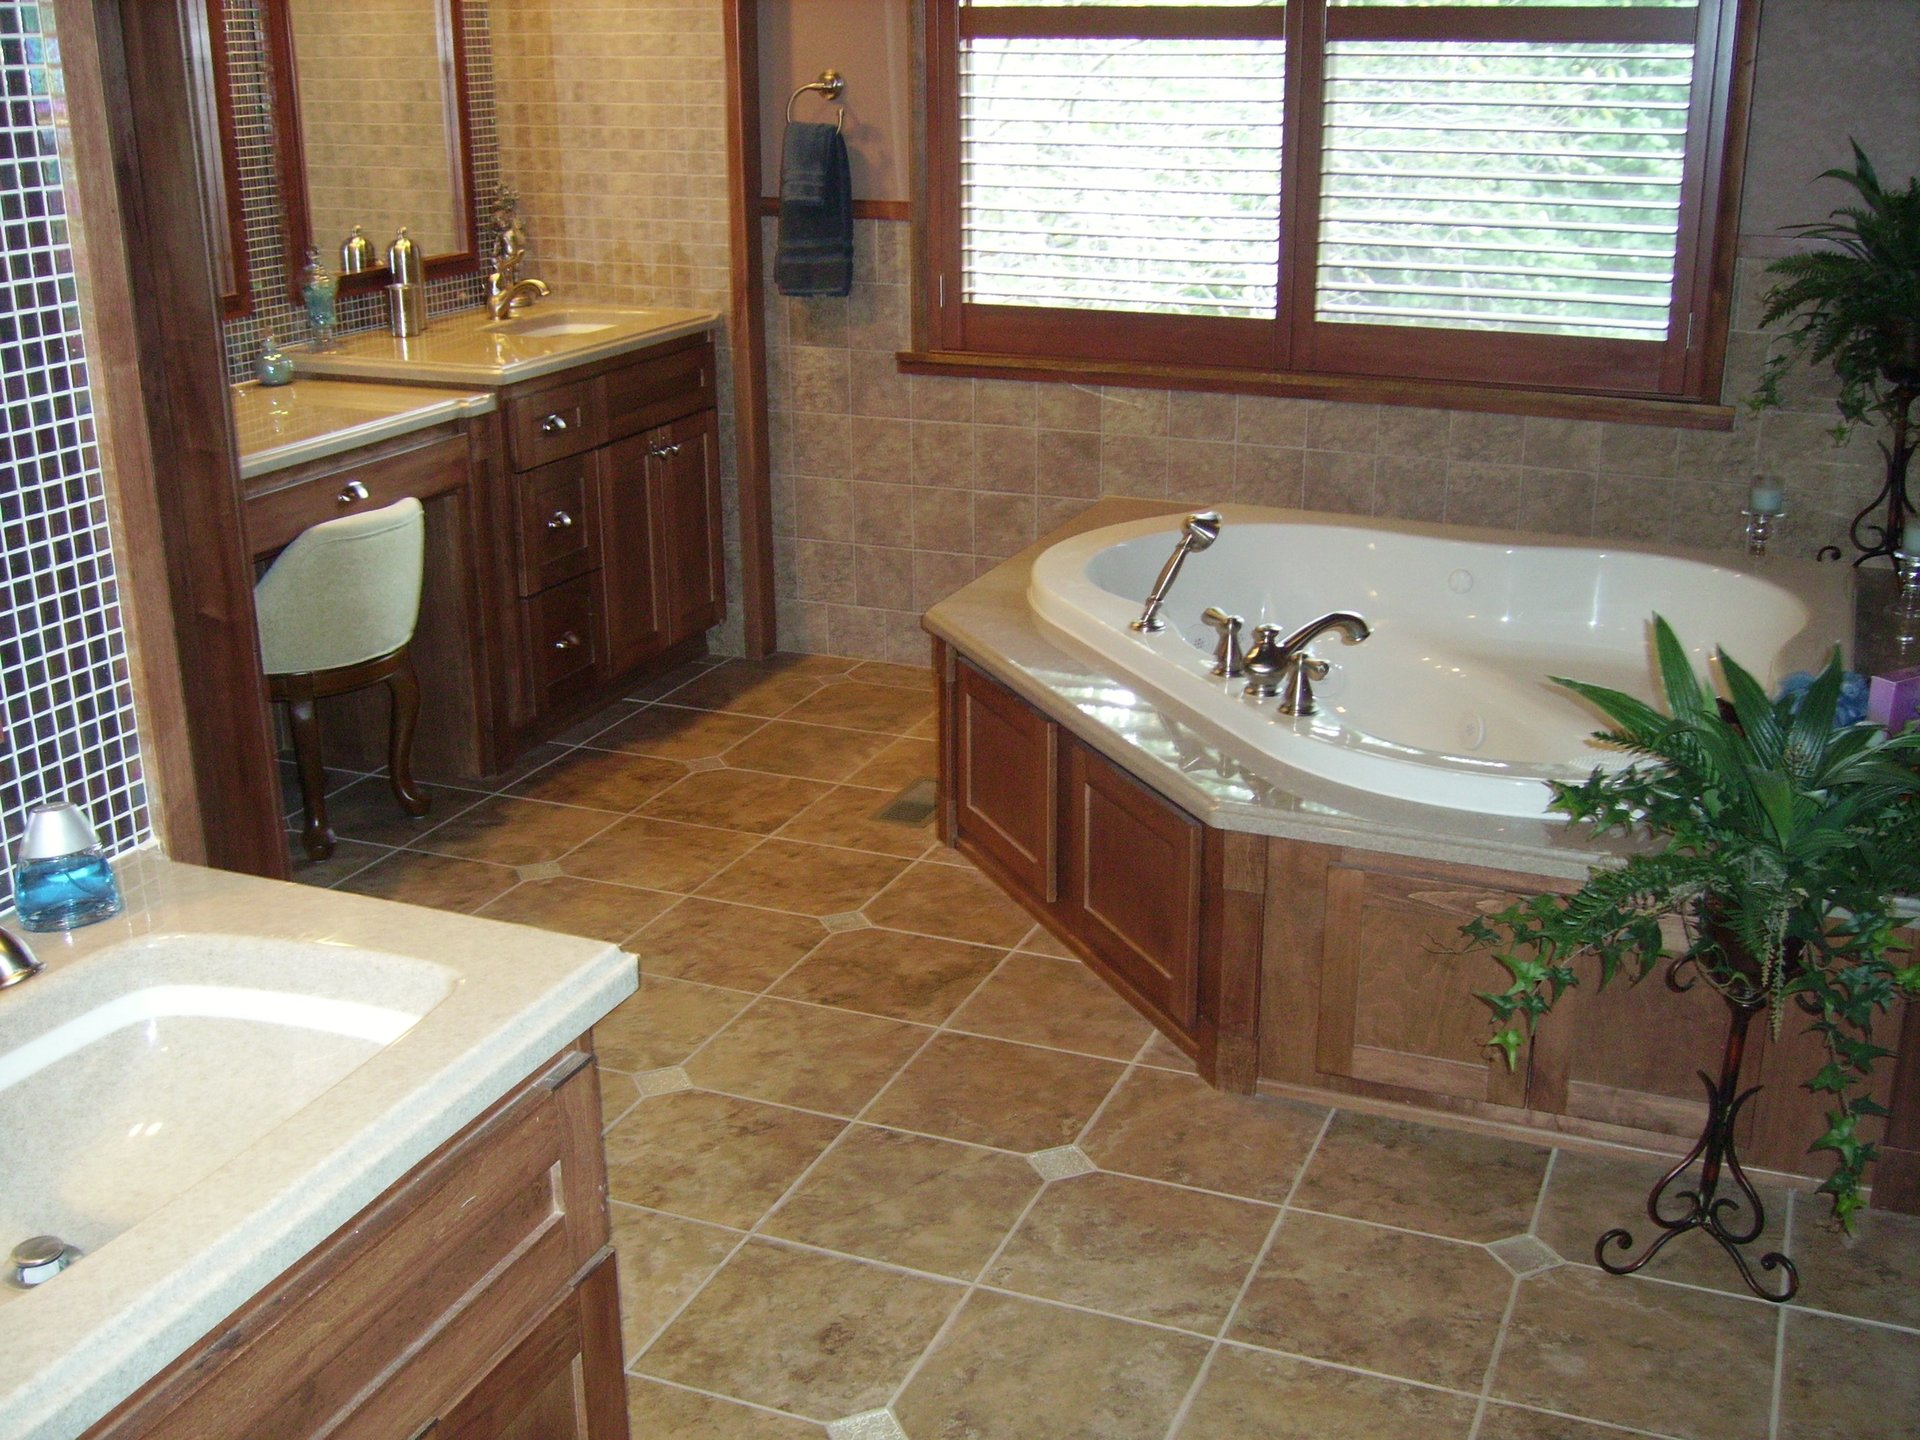 After bathroom remodeling project